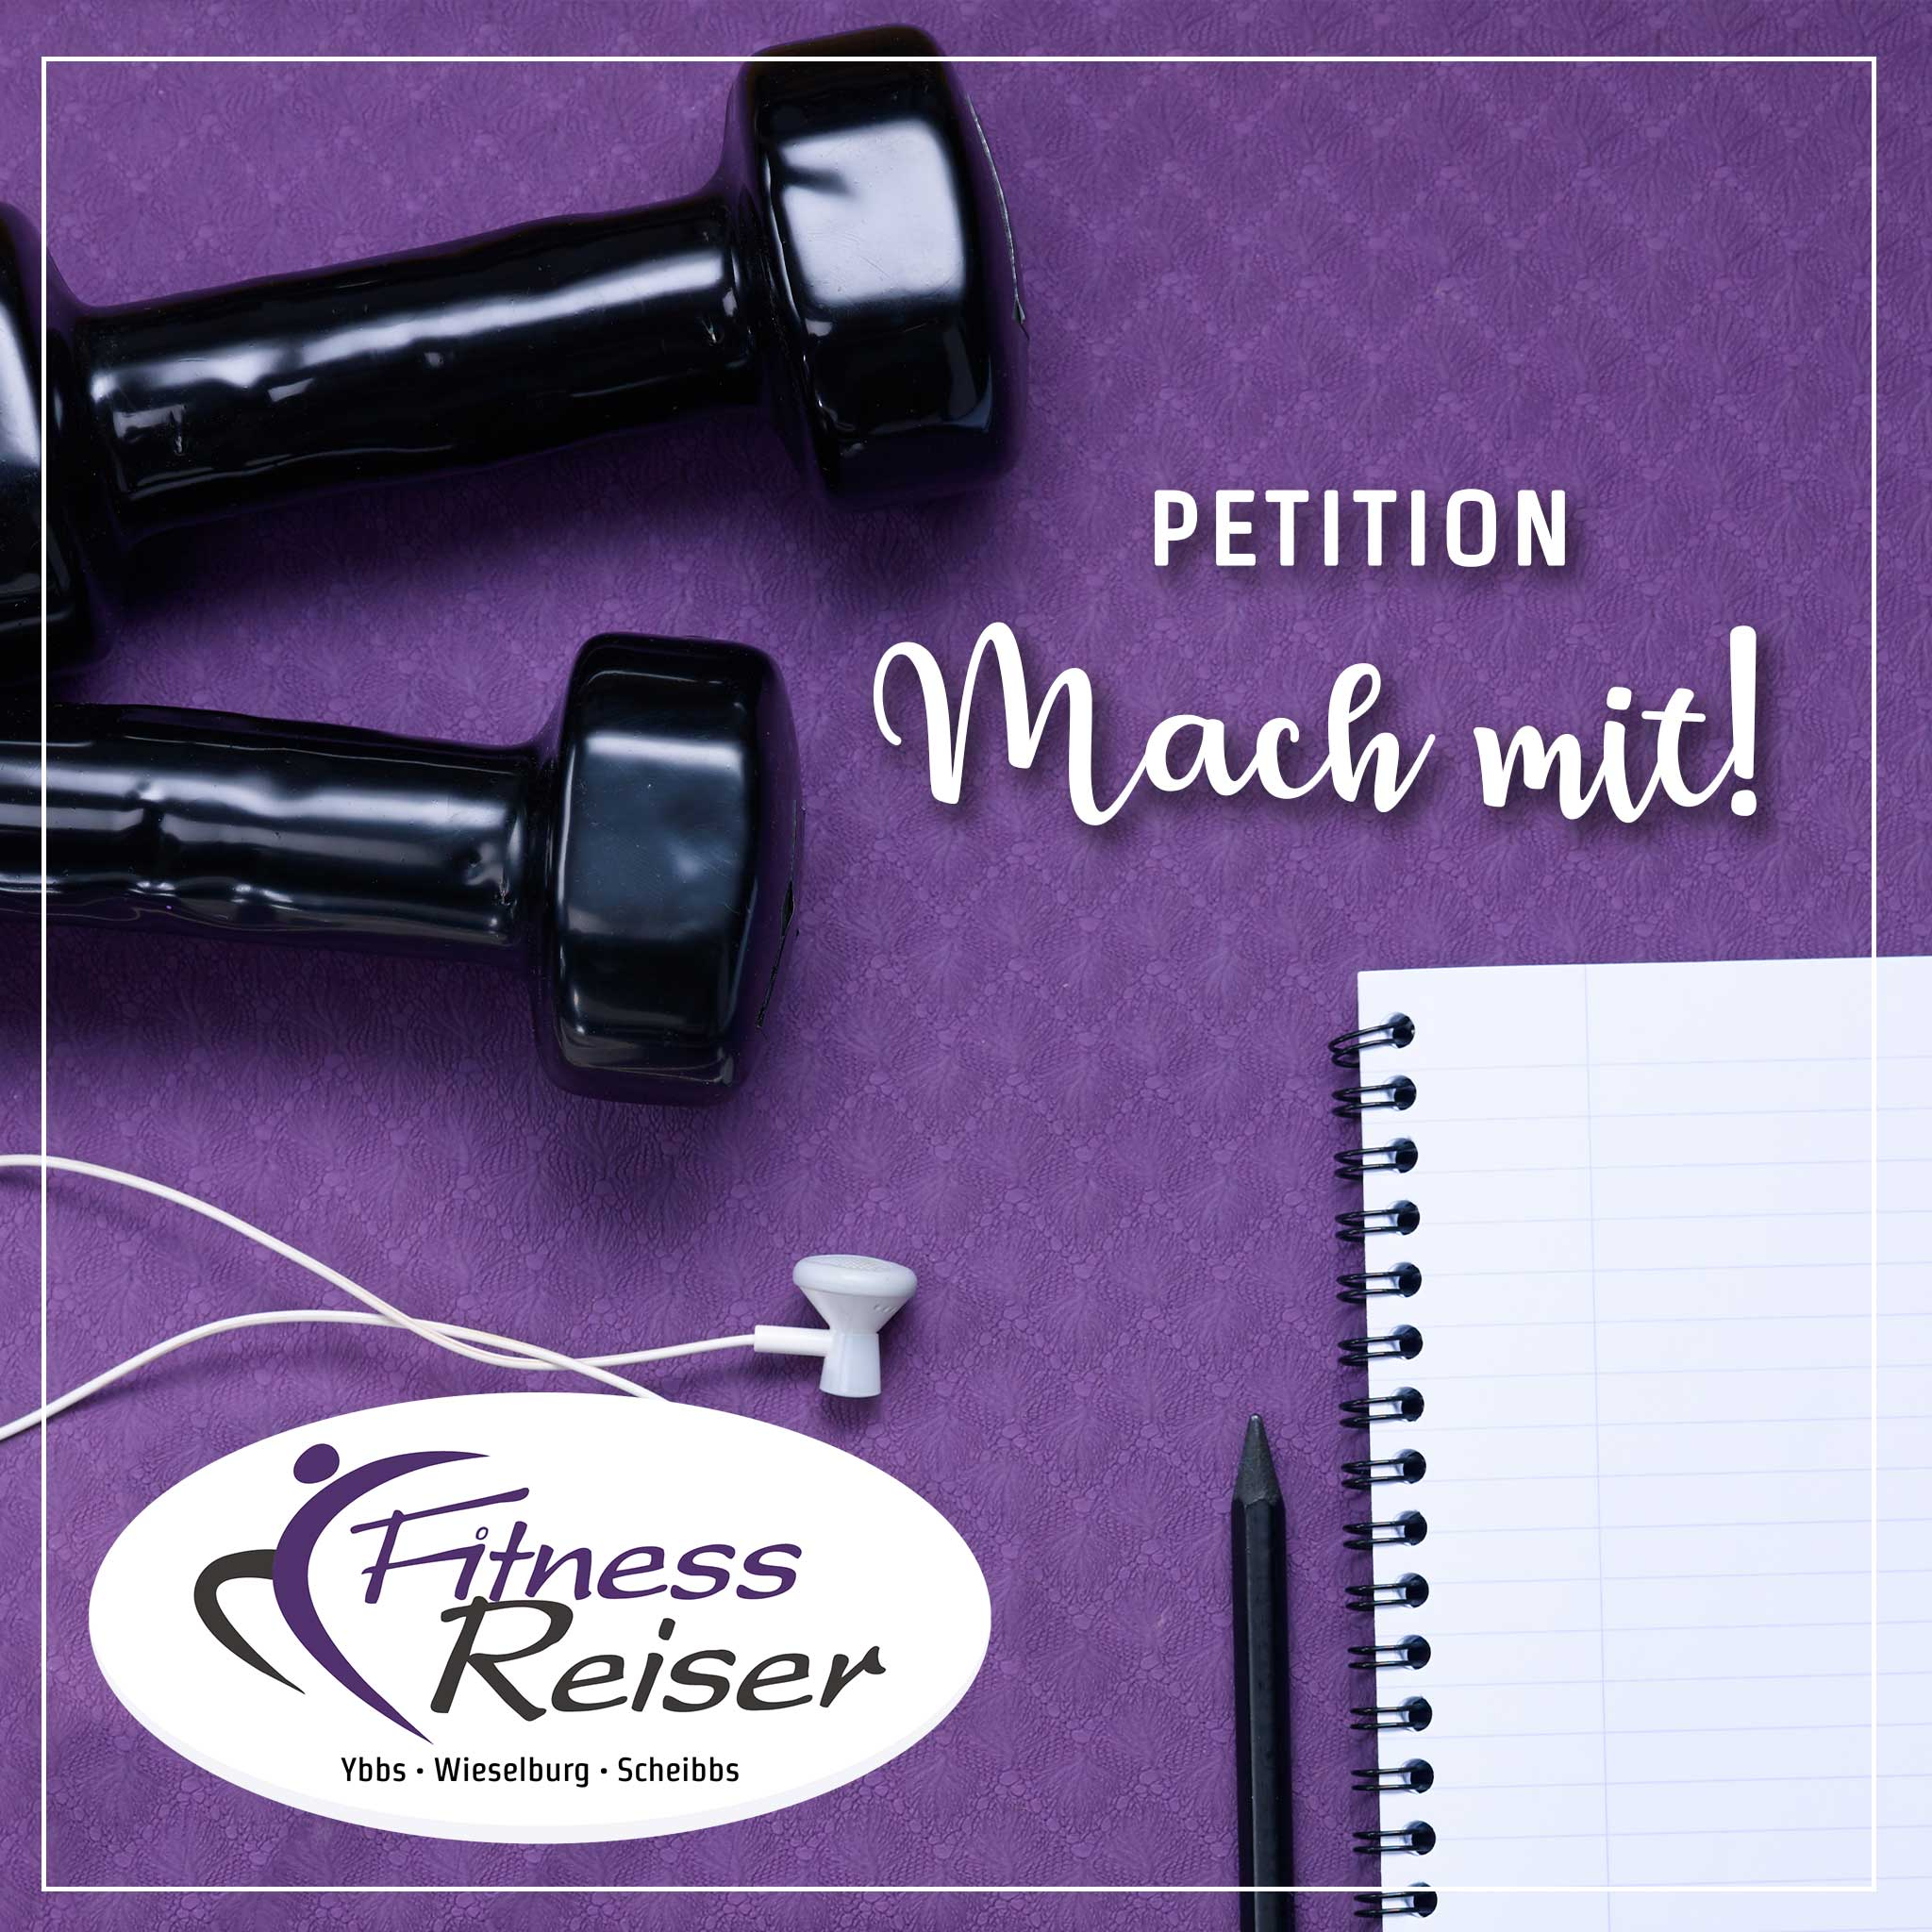 Petition - Fitness Reiser